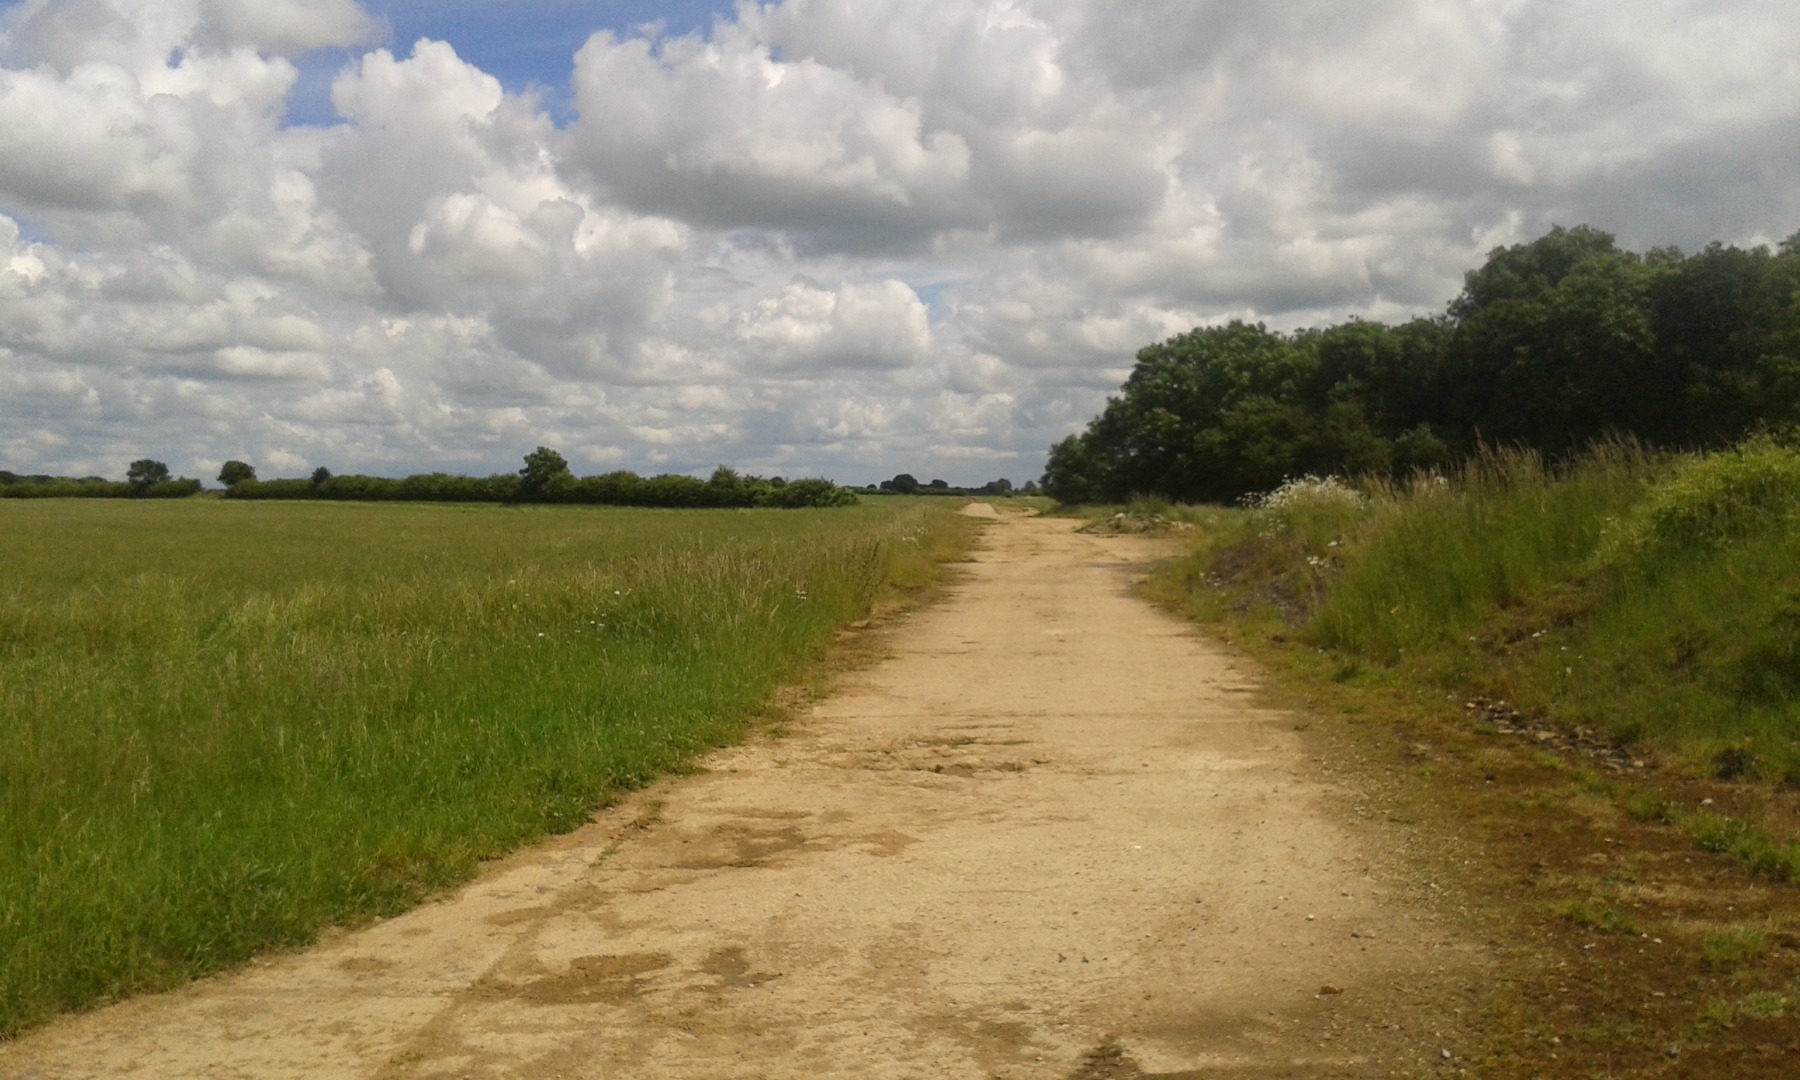 003Southrop Airfield perimeter runway.jpg